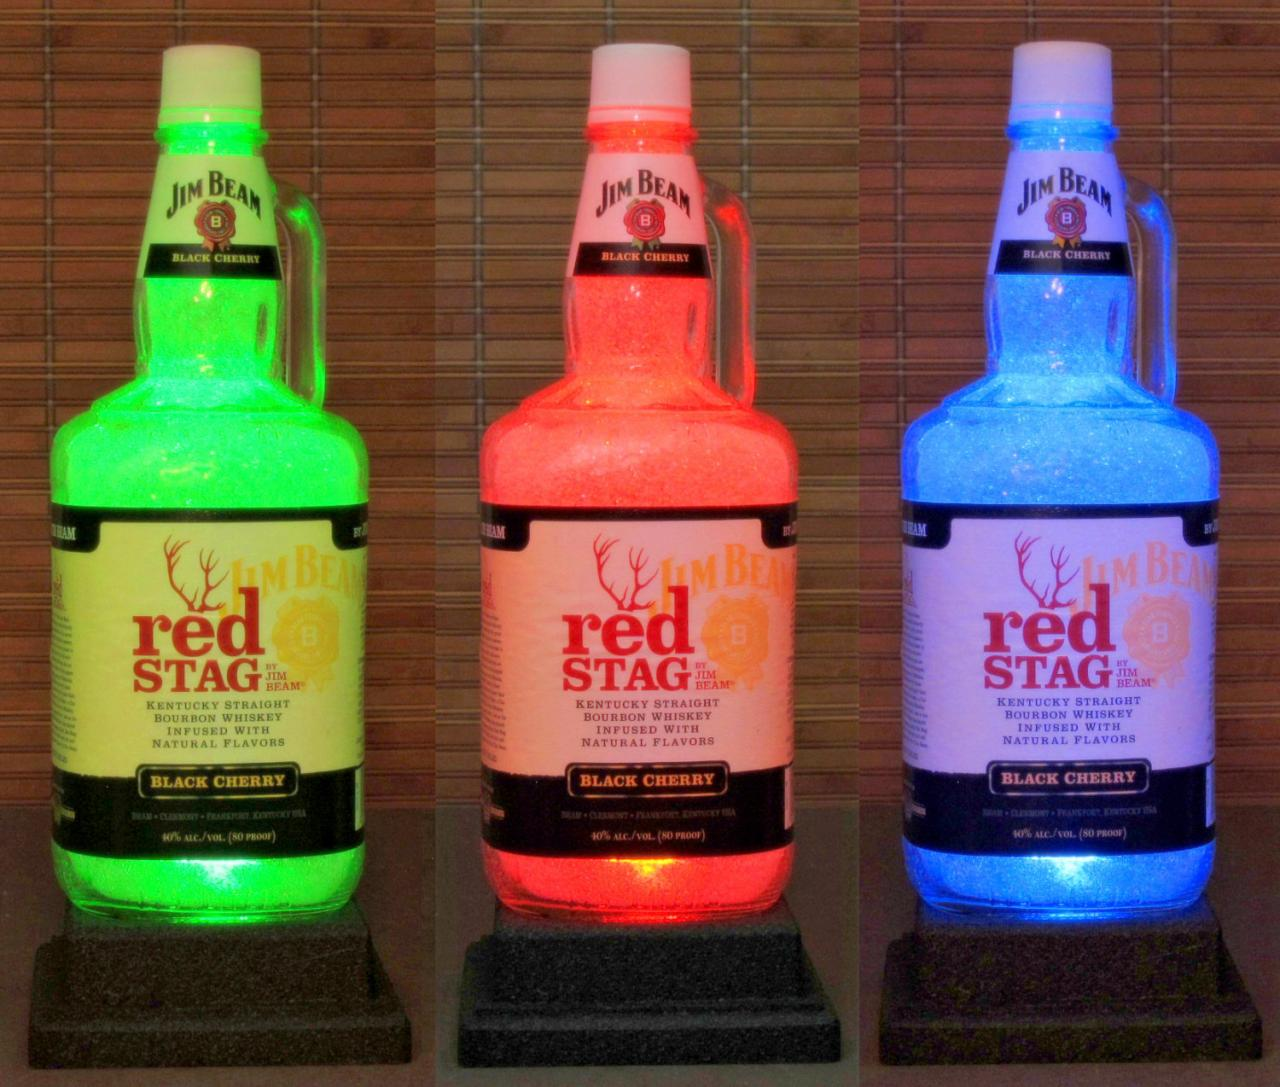 Jim Beam Red Stag Bourbon Whiskey Big 1.75 Liter Bottle Lamp Color Changing Remote Controlled LED Bar Light Bodacious Bottles